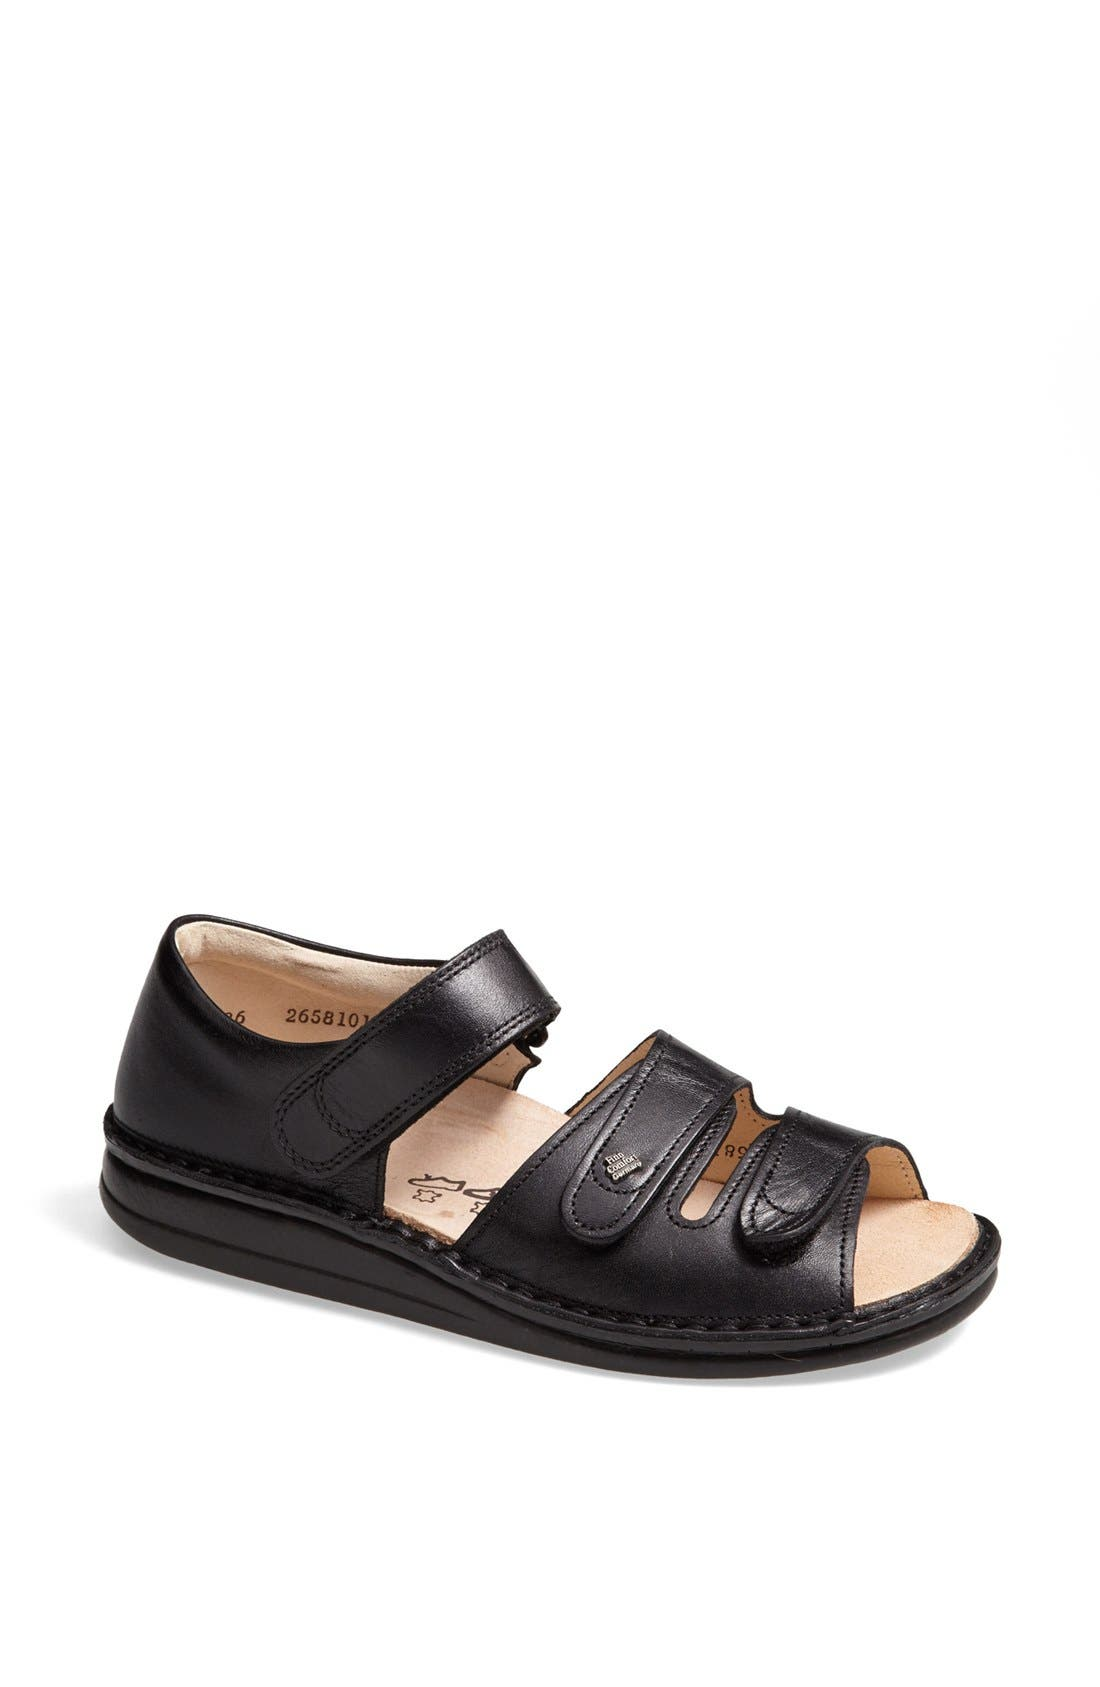 Alternate Image 1 Selected - Finn Comfort 'Baltrum 1518' Leather Sandal